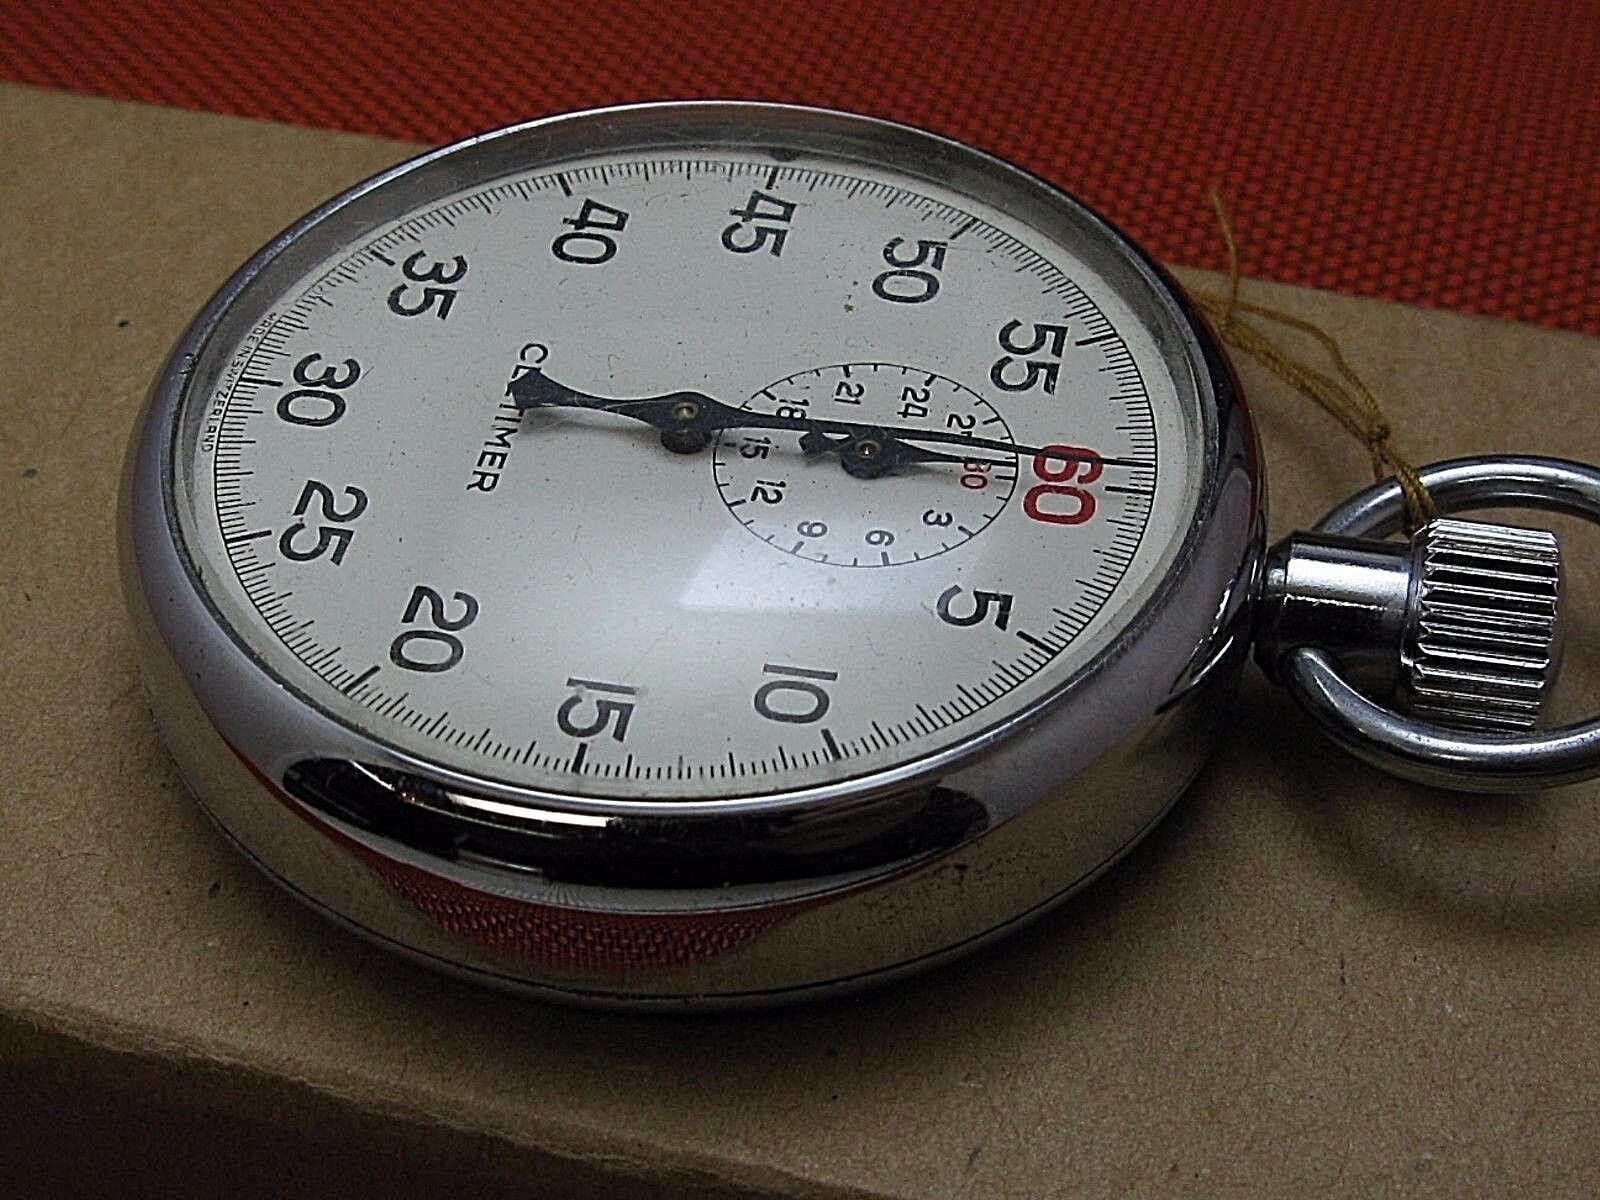 vintage hand held Stop watch Timer Count Cletimer in good working order.